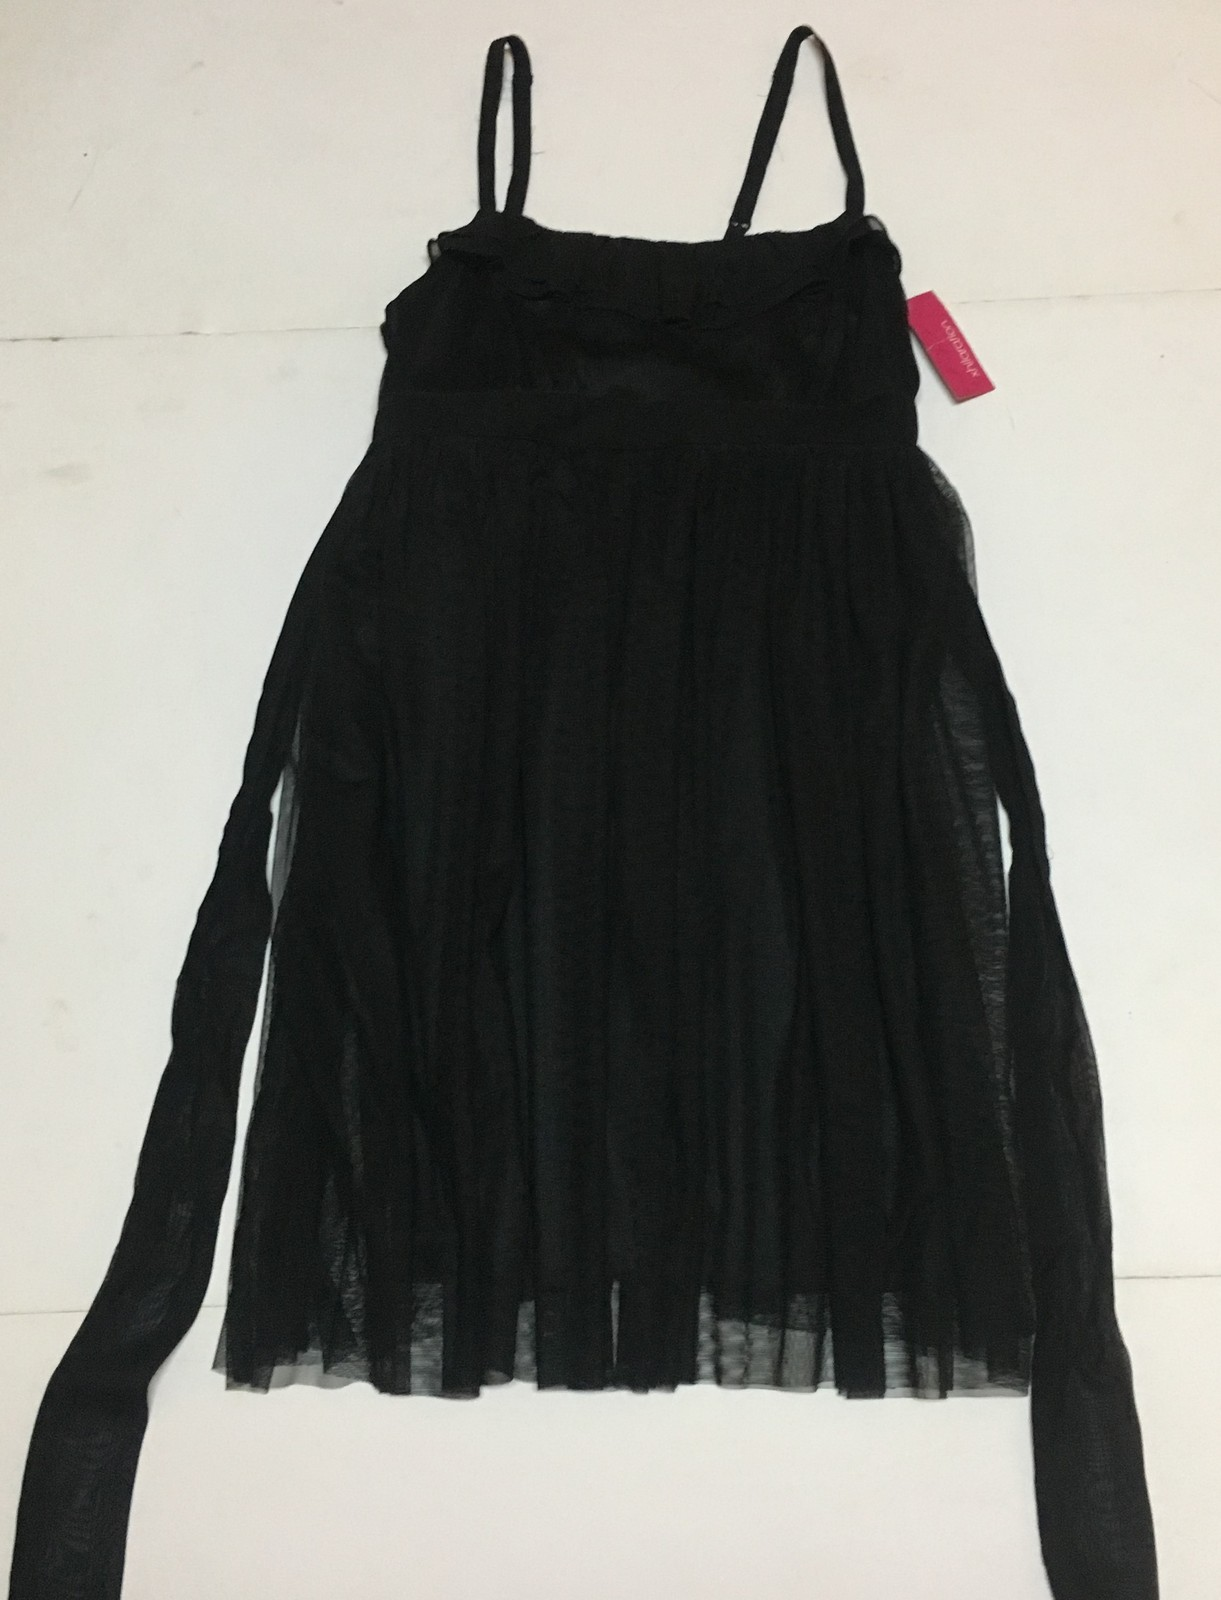 Xhilaration Black Dress Skinny Strap Summer Dress Sz L